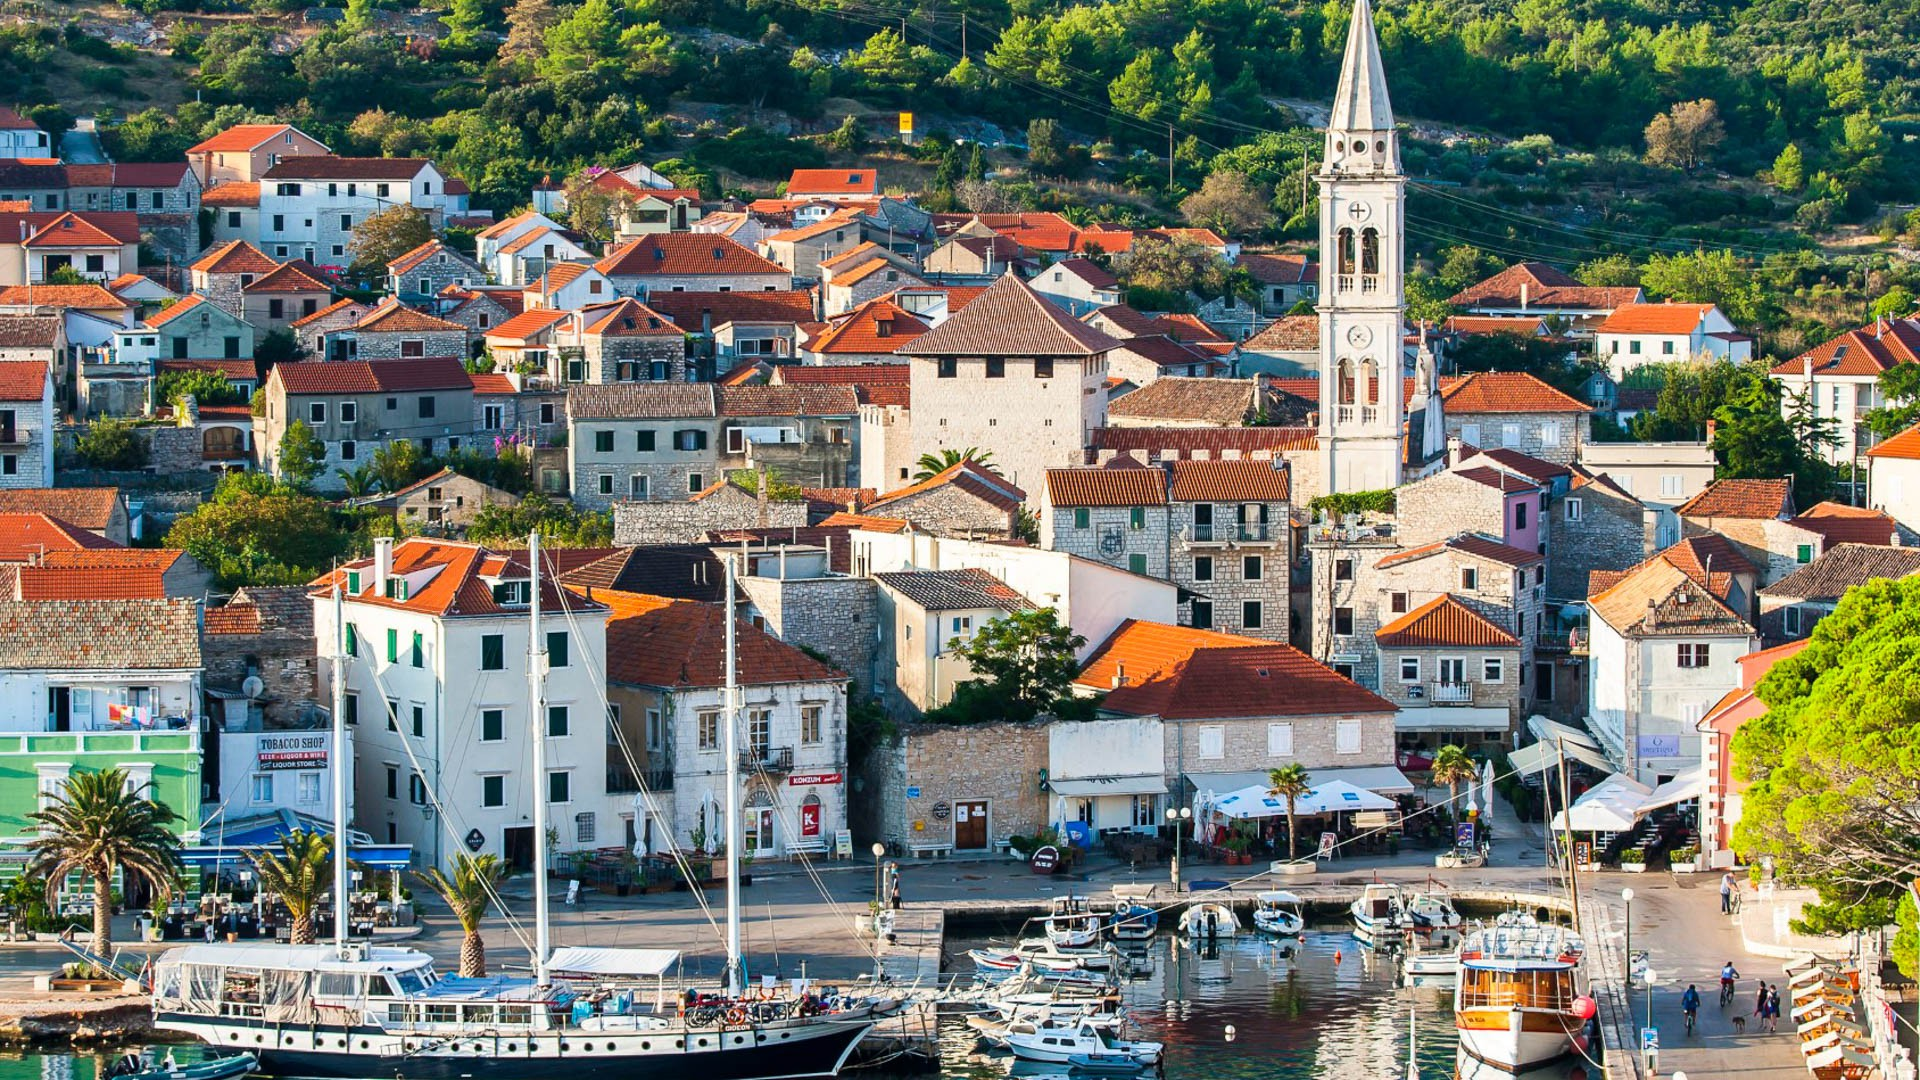 Jelsa (Hvar Island) - Adriatic Sea | Croatia Cruise Croatia Cruise